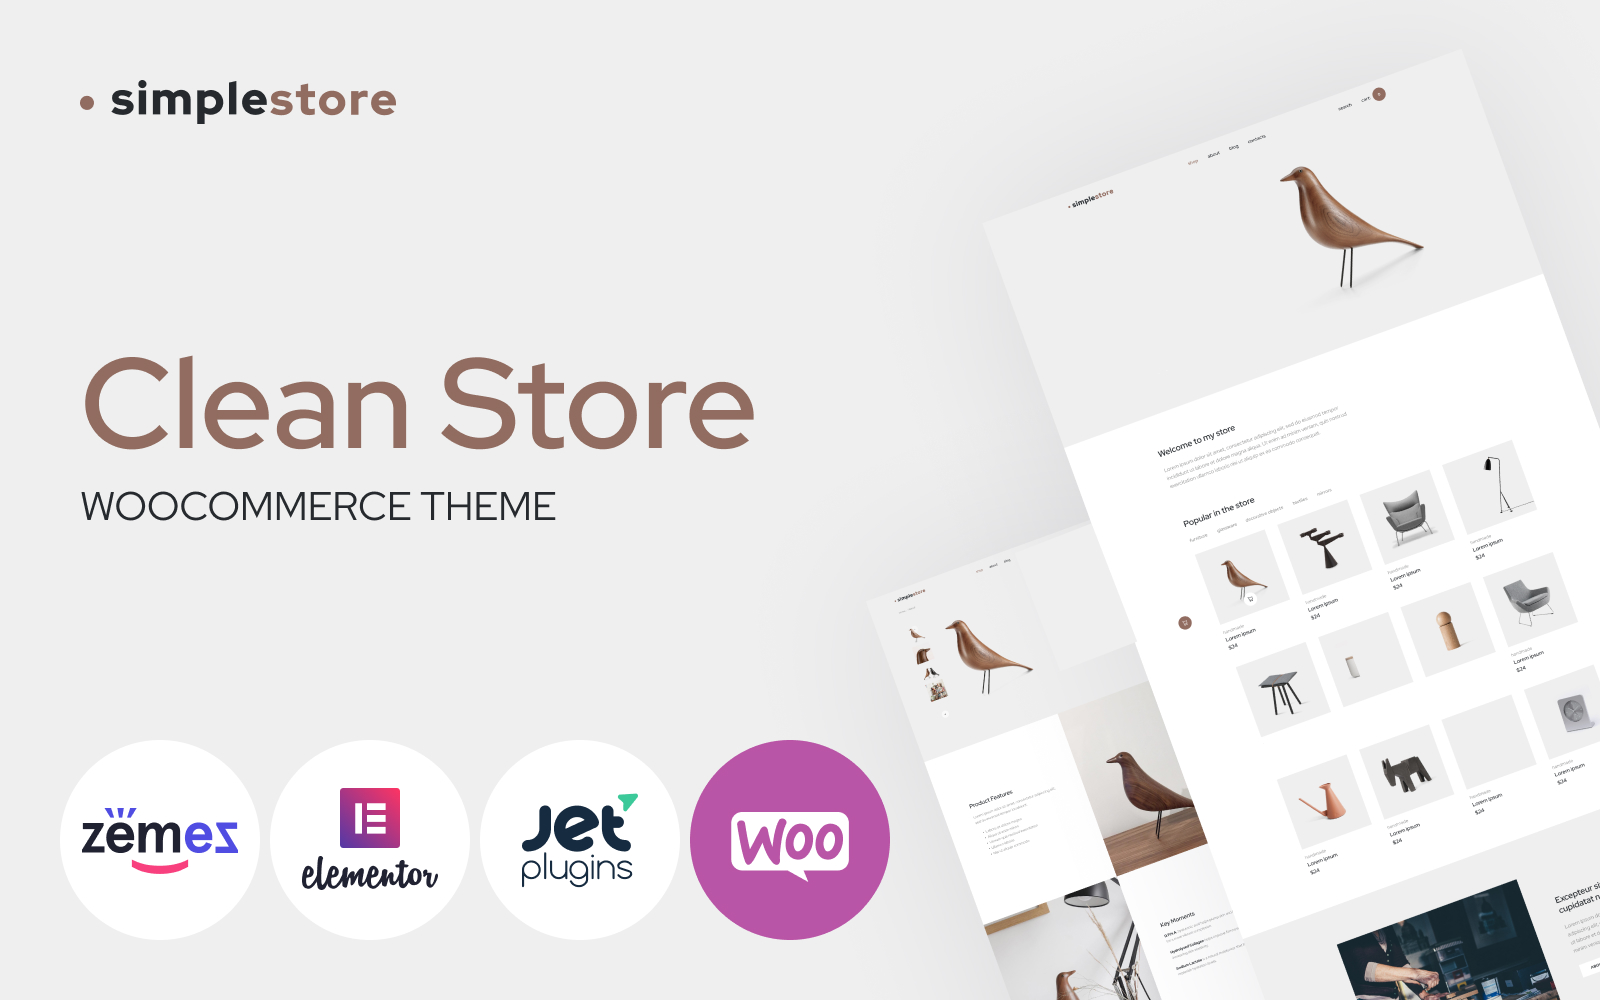 """Simplestore - Home Decor Template for Online Shops"" 响应式WooCommerce模板 #86288"